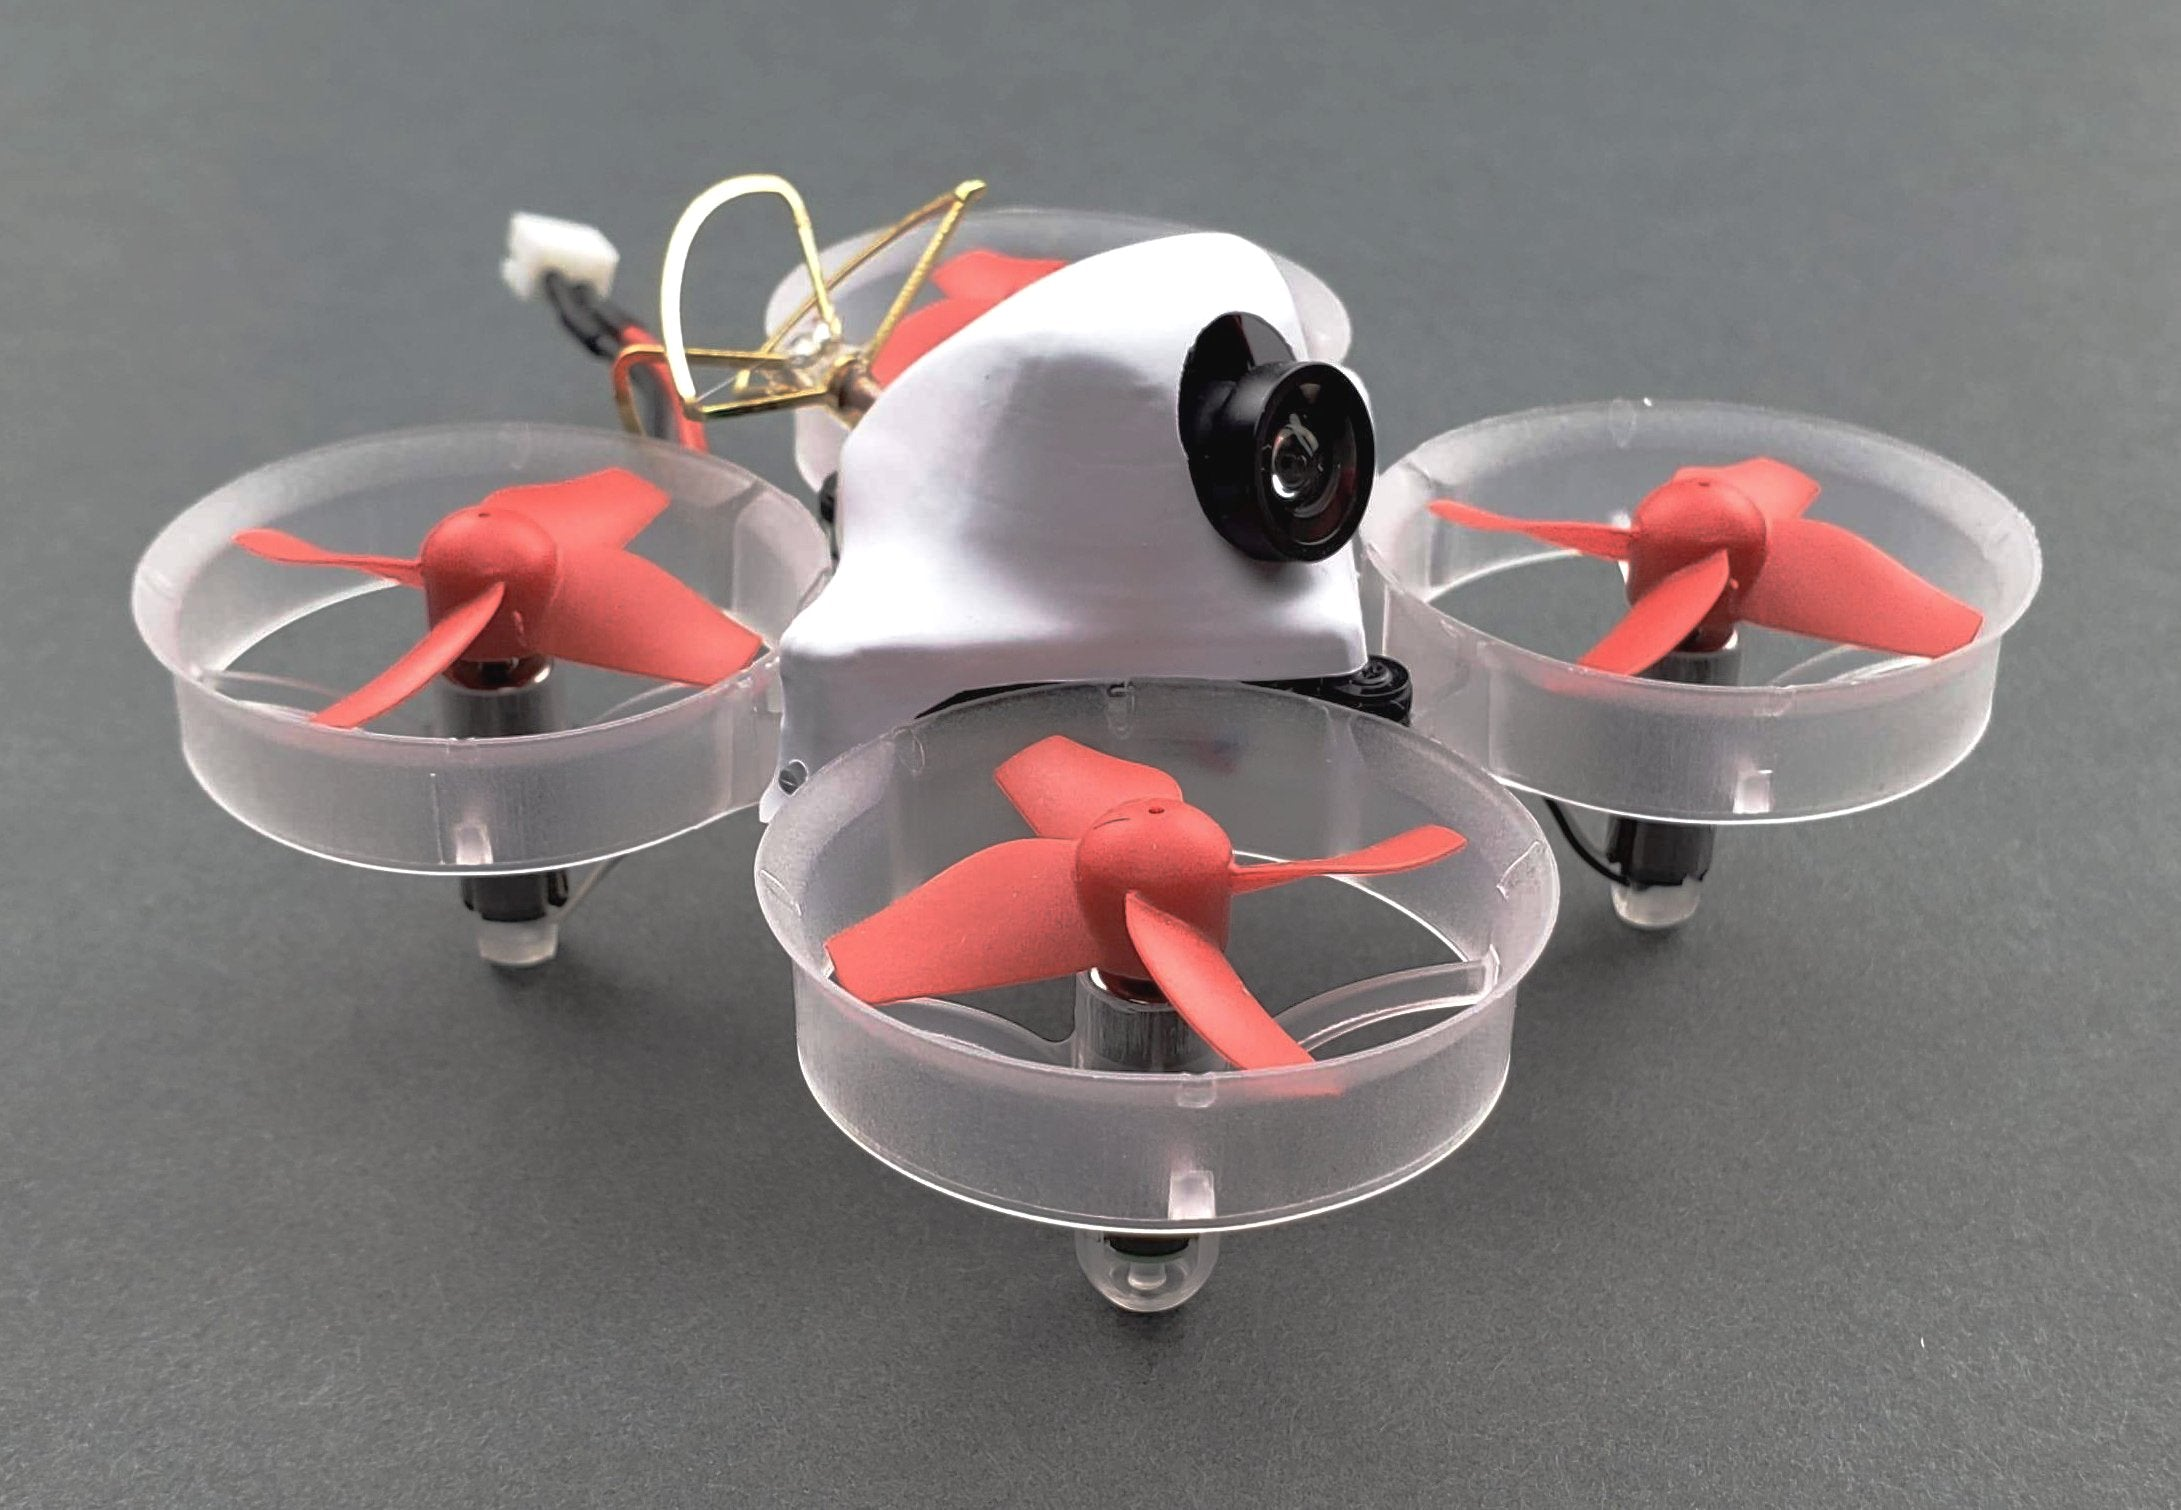 https://www tinywhoop com/ daily https://www tinywhoop com/products